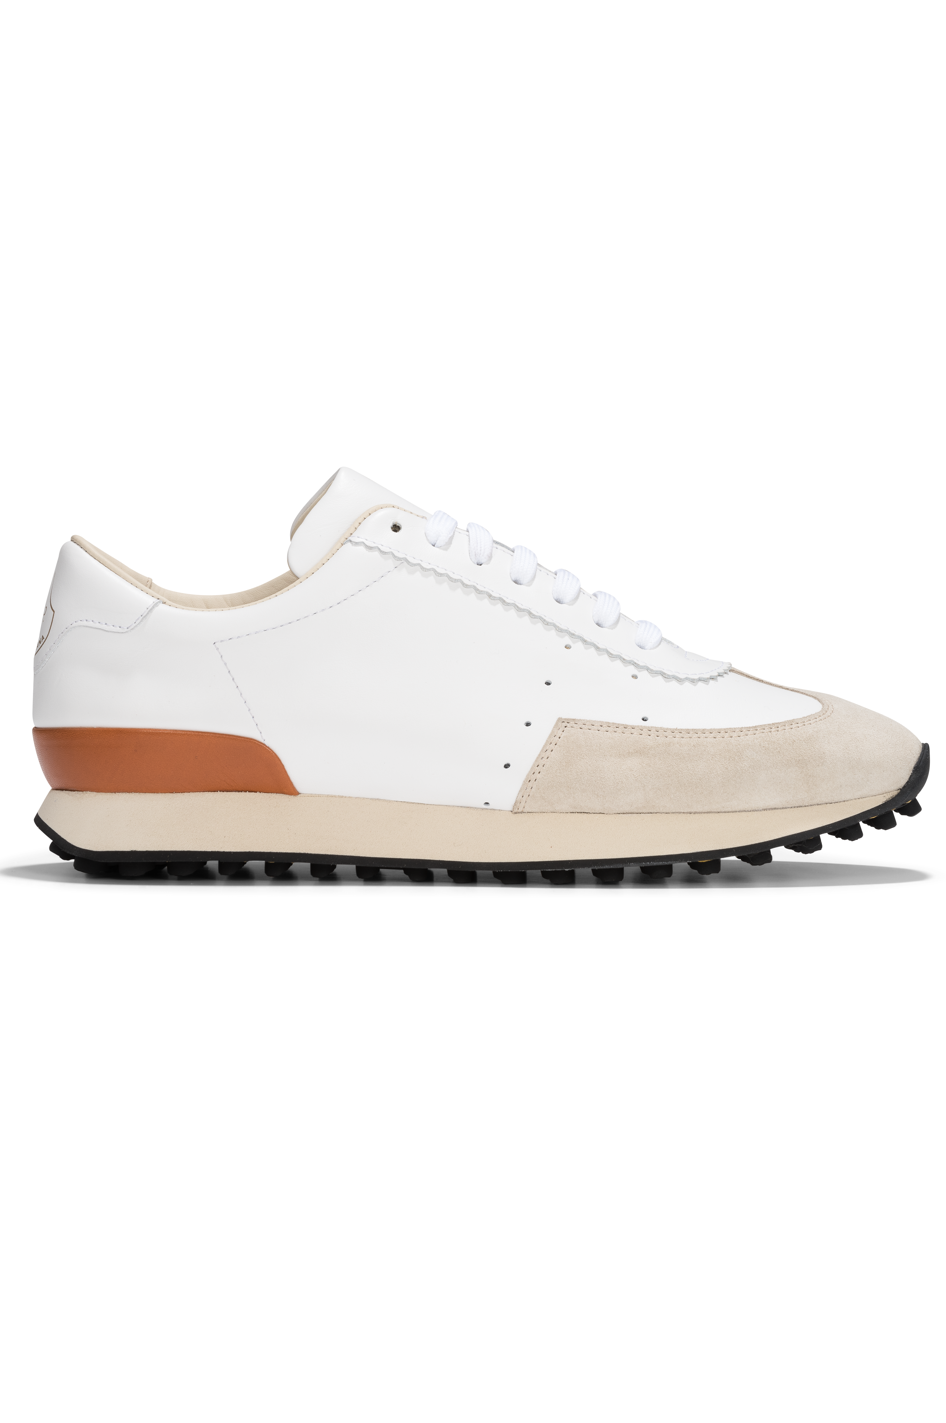 Off campo vitello leather - Bianco